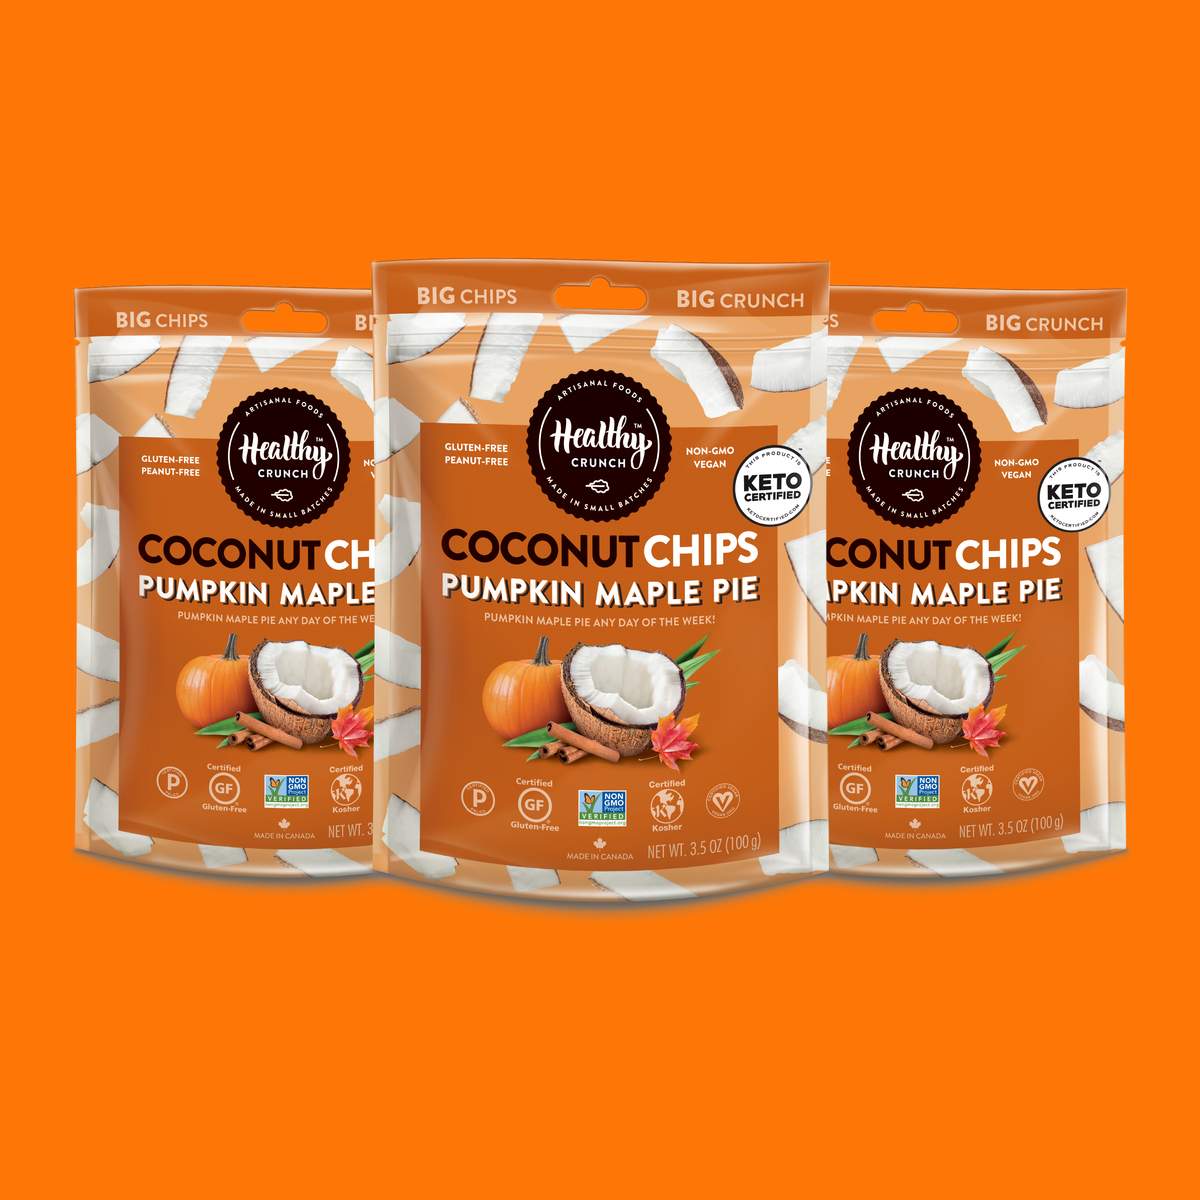 Pumpkin Maple Pie Coconut Chips